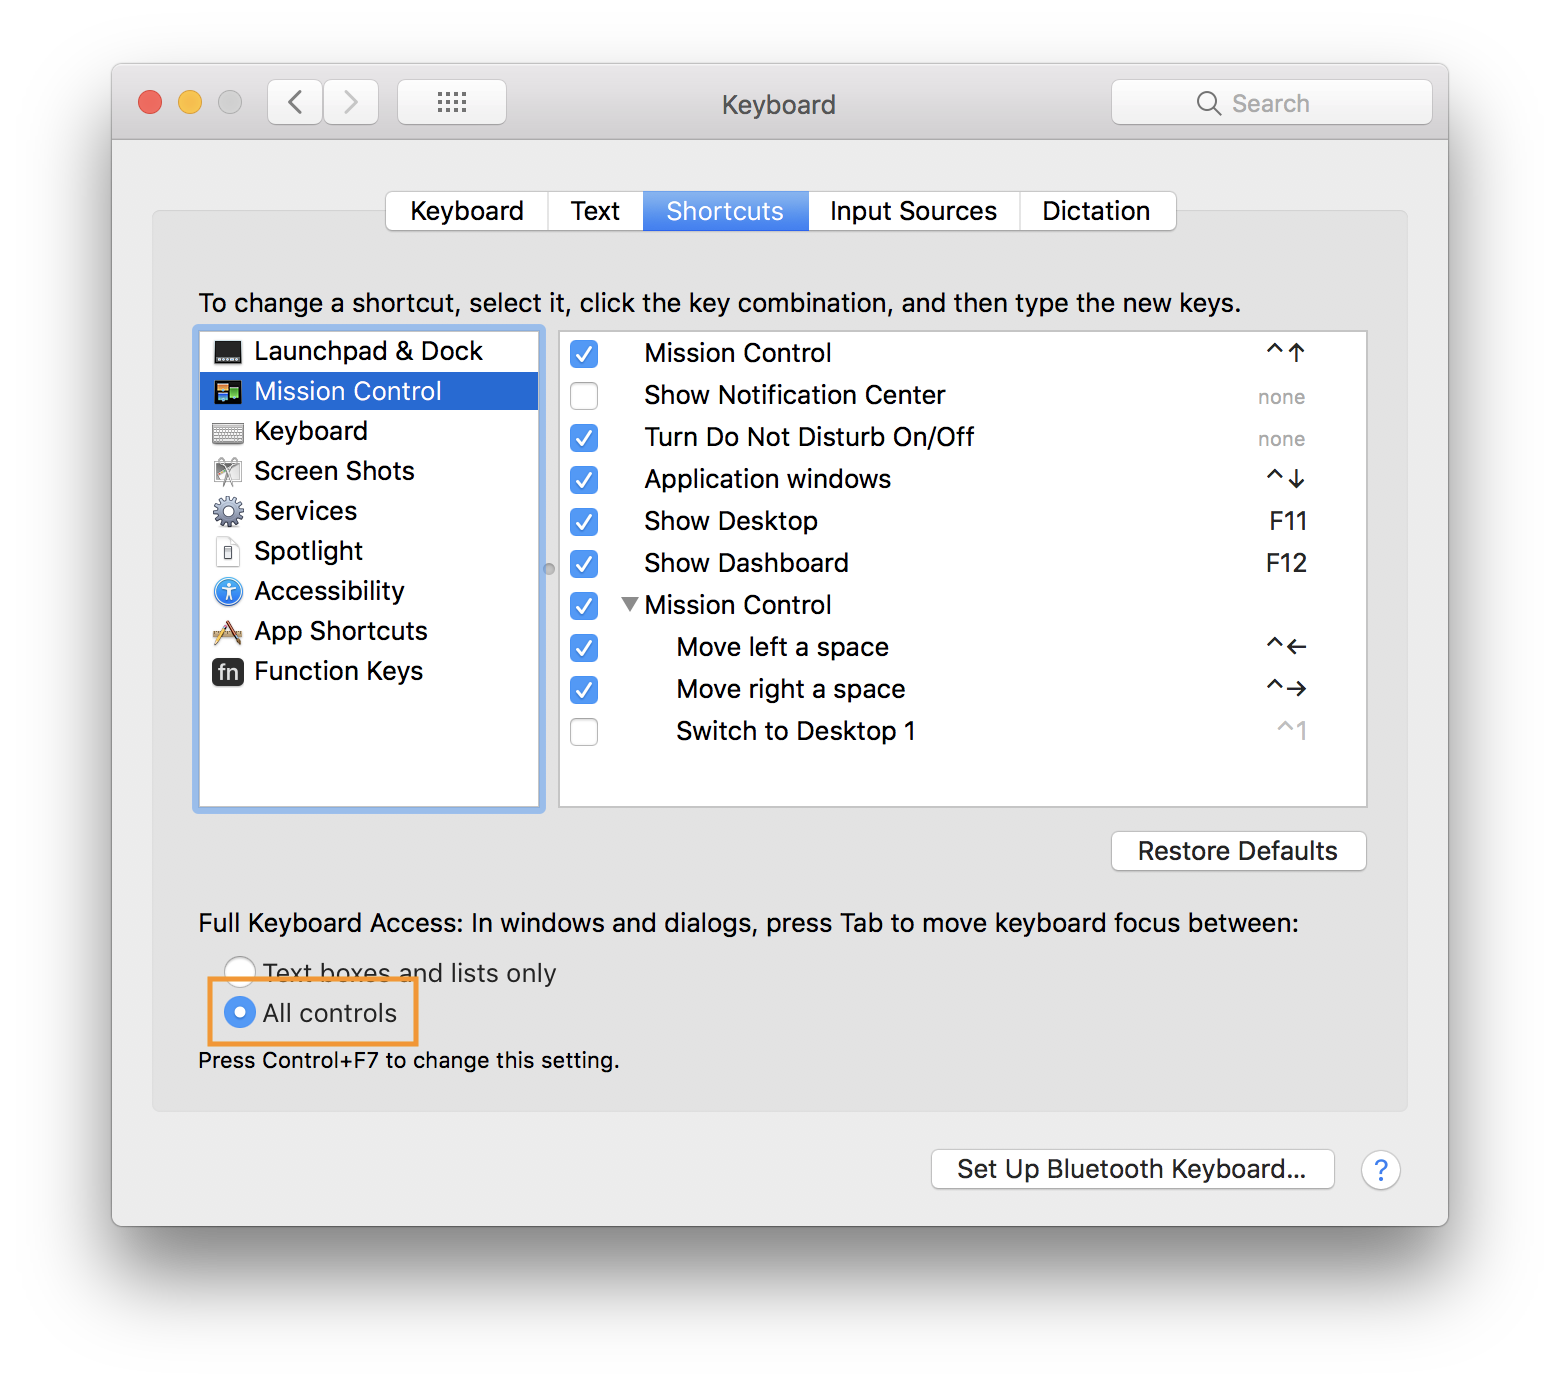 The macOS Settings window. The screenshot is highlighting the selection of the 'All controls' radio button.